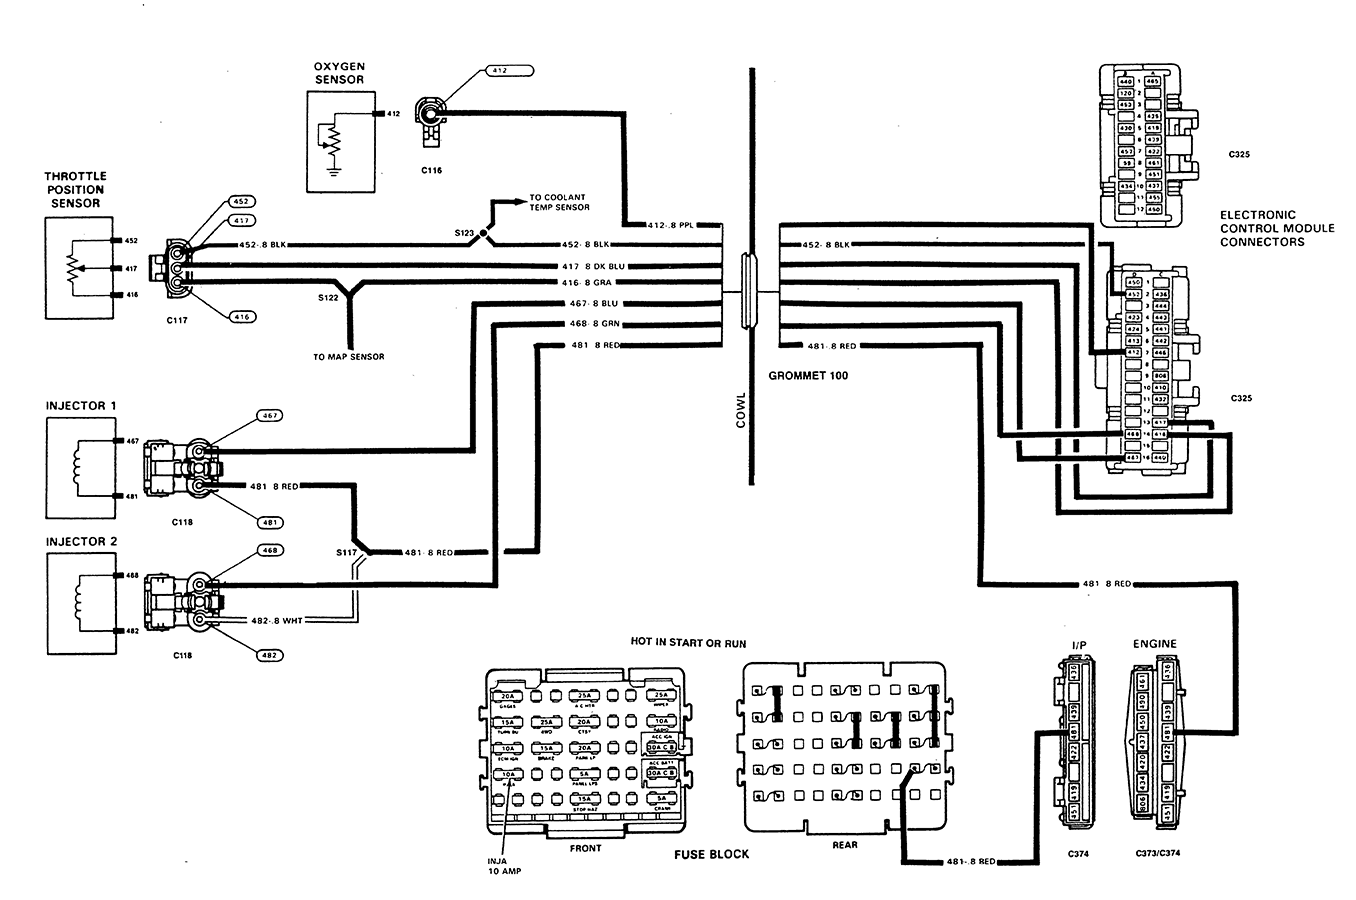 gmc o2 sensor wiring diagram gmc wiring diagrams online where can i an oxygen sensor wiring diagram for a 1989